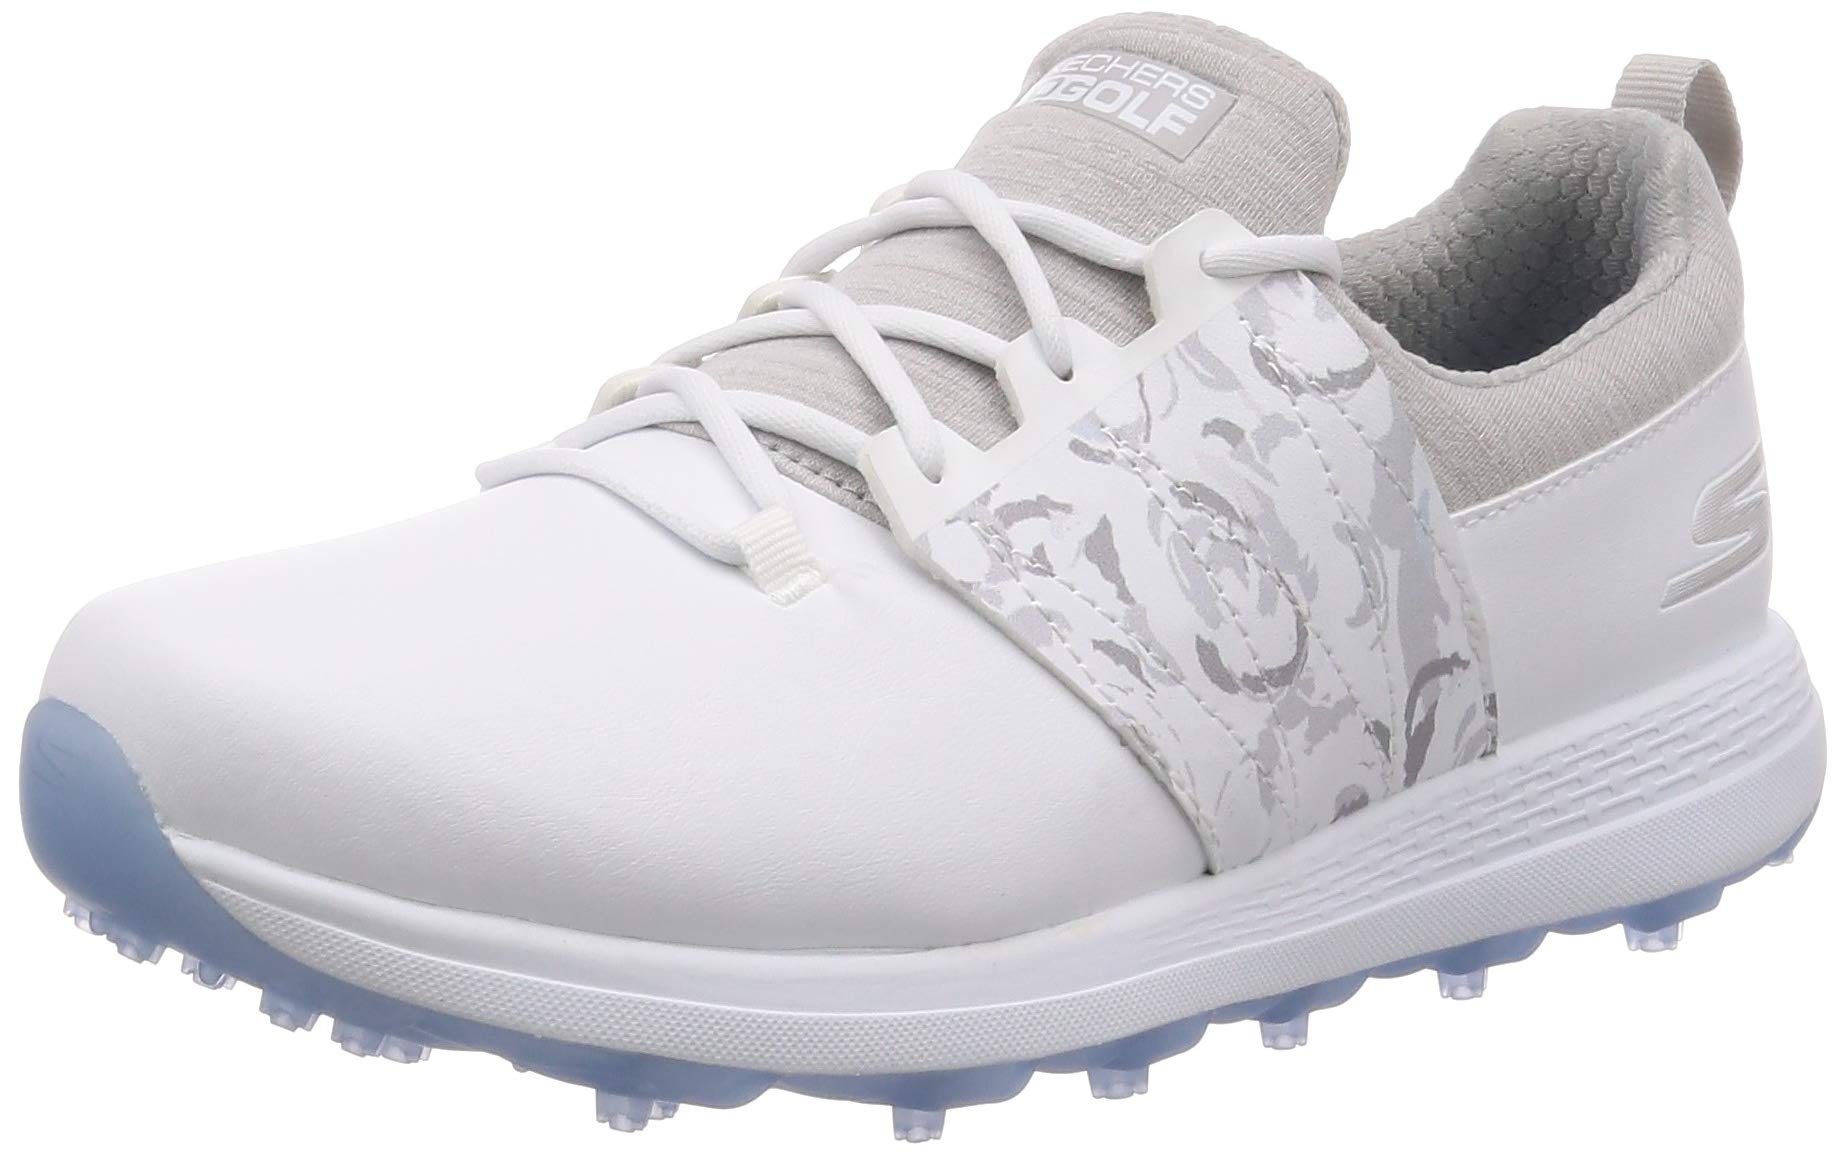 Skechers Women's Eagle Spikeless Golf Shoe, White/Gray Floral, 6 M US by Skechers